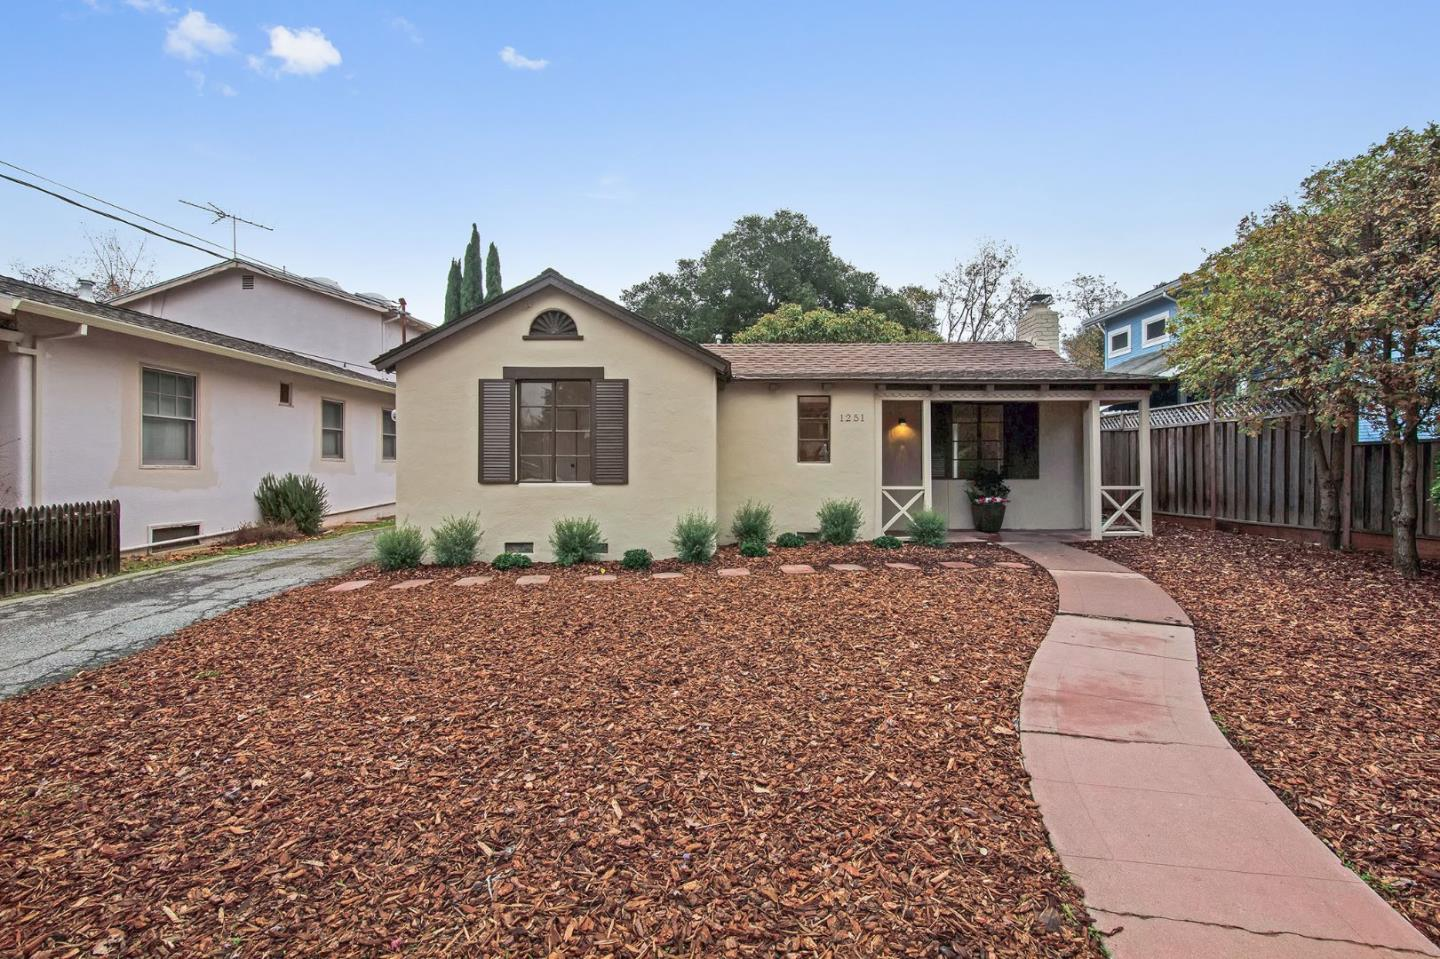 Detail Gallery Image 1 of 1 For 1251 College Ave, Palo Alto, CA, 94306 - 2 Beds | 1 Baths